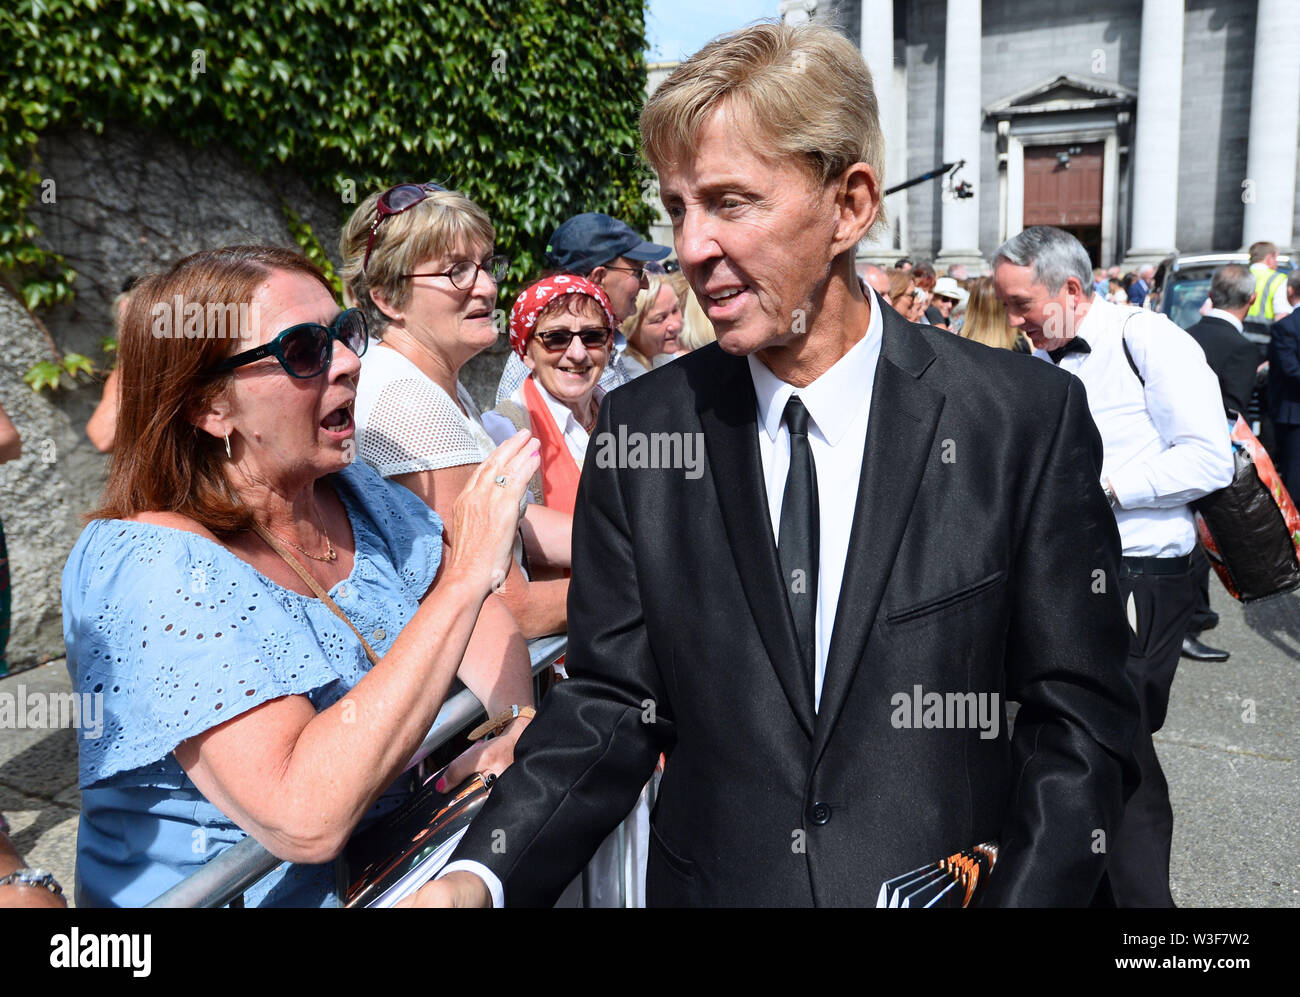 Singer Dickie Rock arrives for the funeral of Father Ted star Brendan Grace at the Church of St. Nicholas of Myra, Dublin. - Stock Image